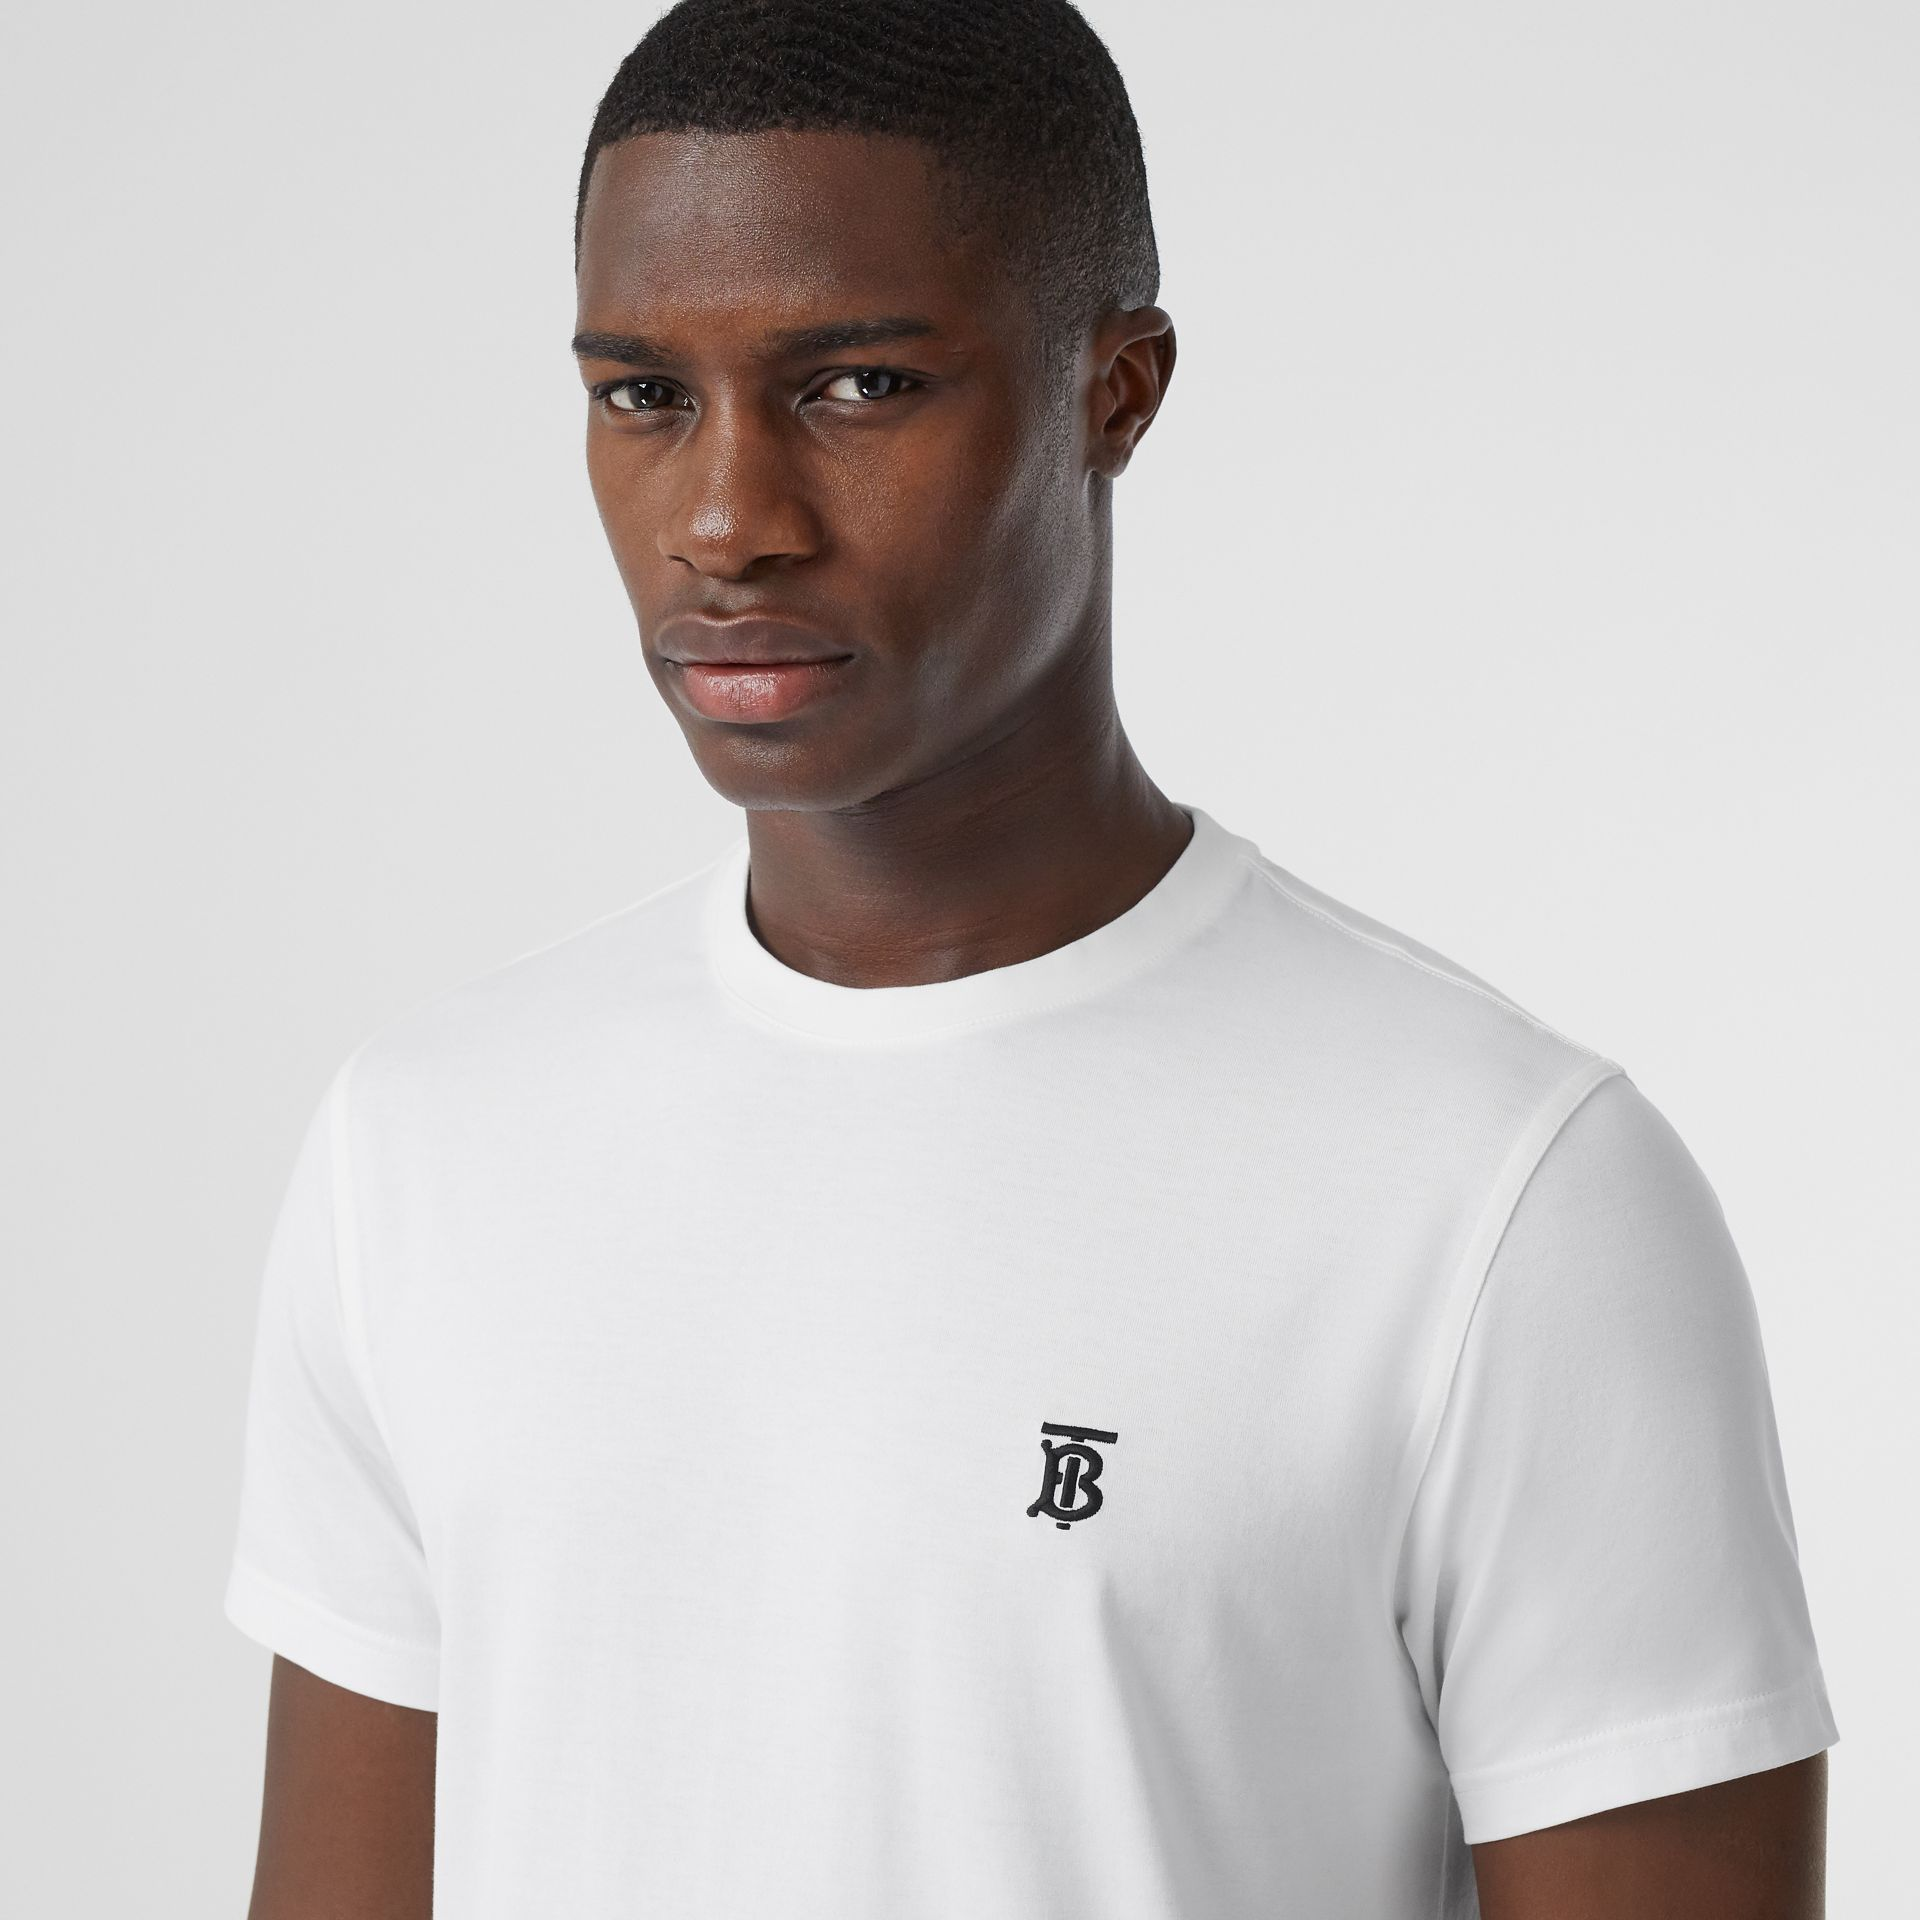 Monogram Motif Cotton T-shirt in White - Men | Burberry - gallery image 1